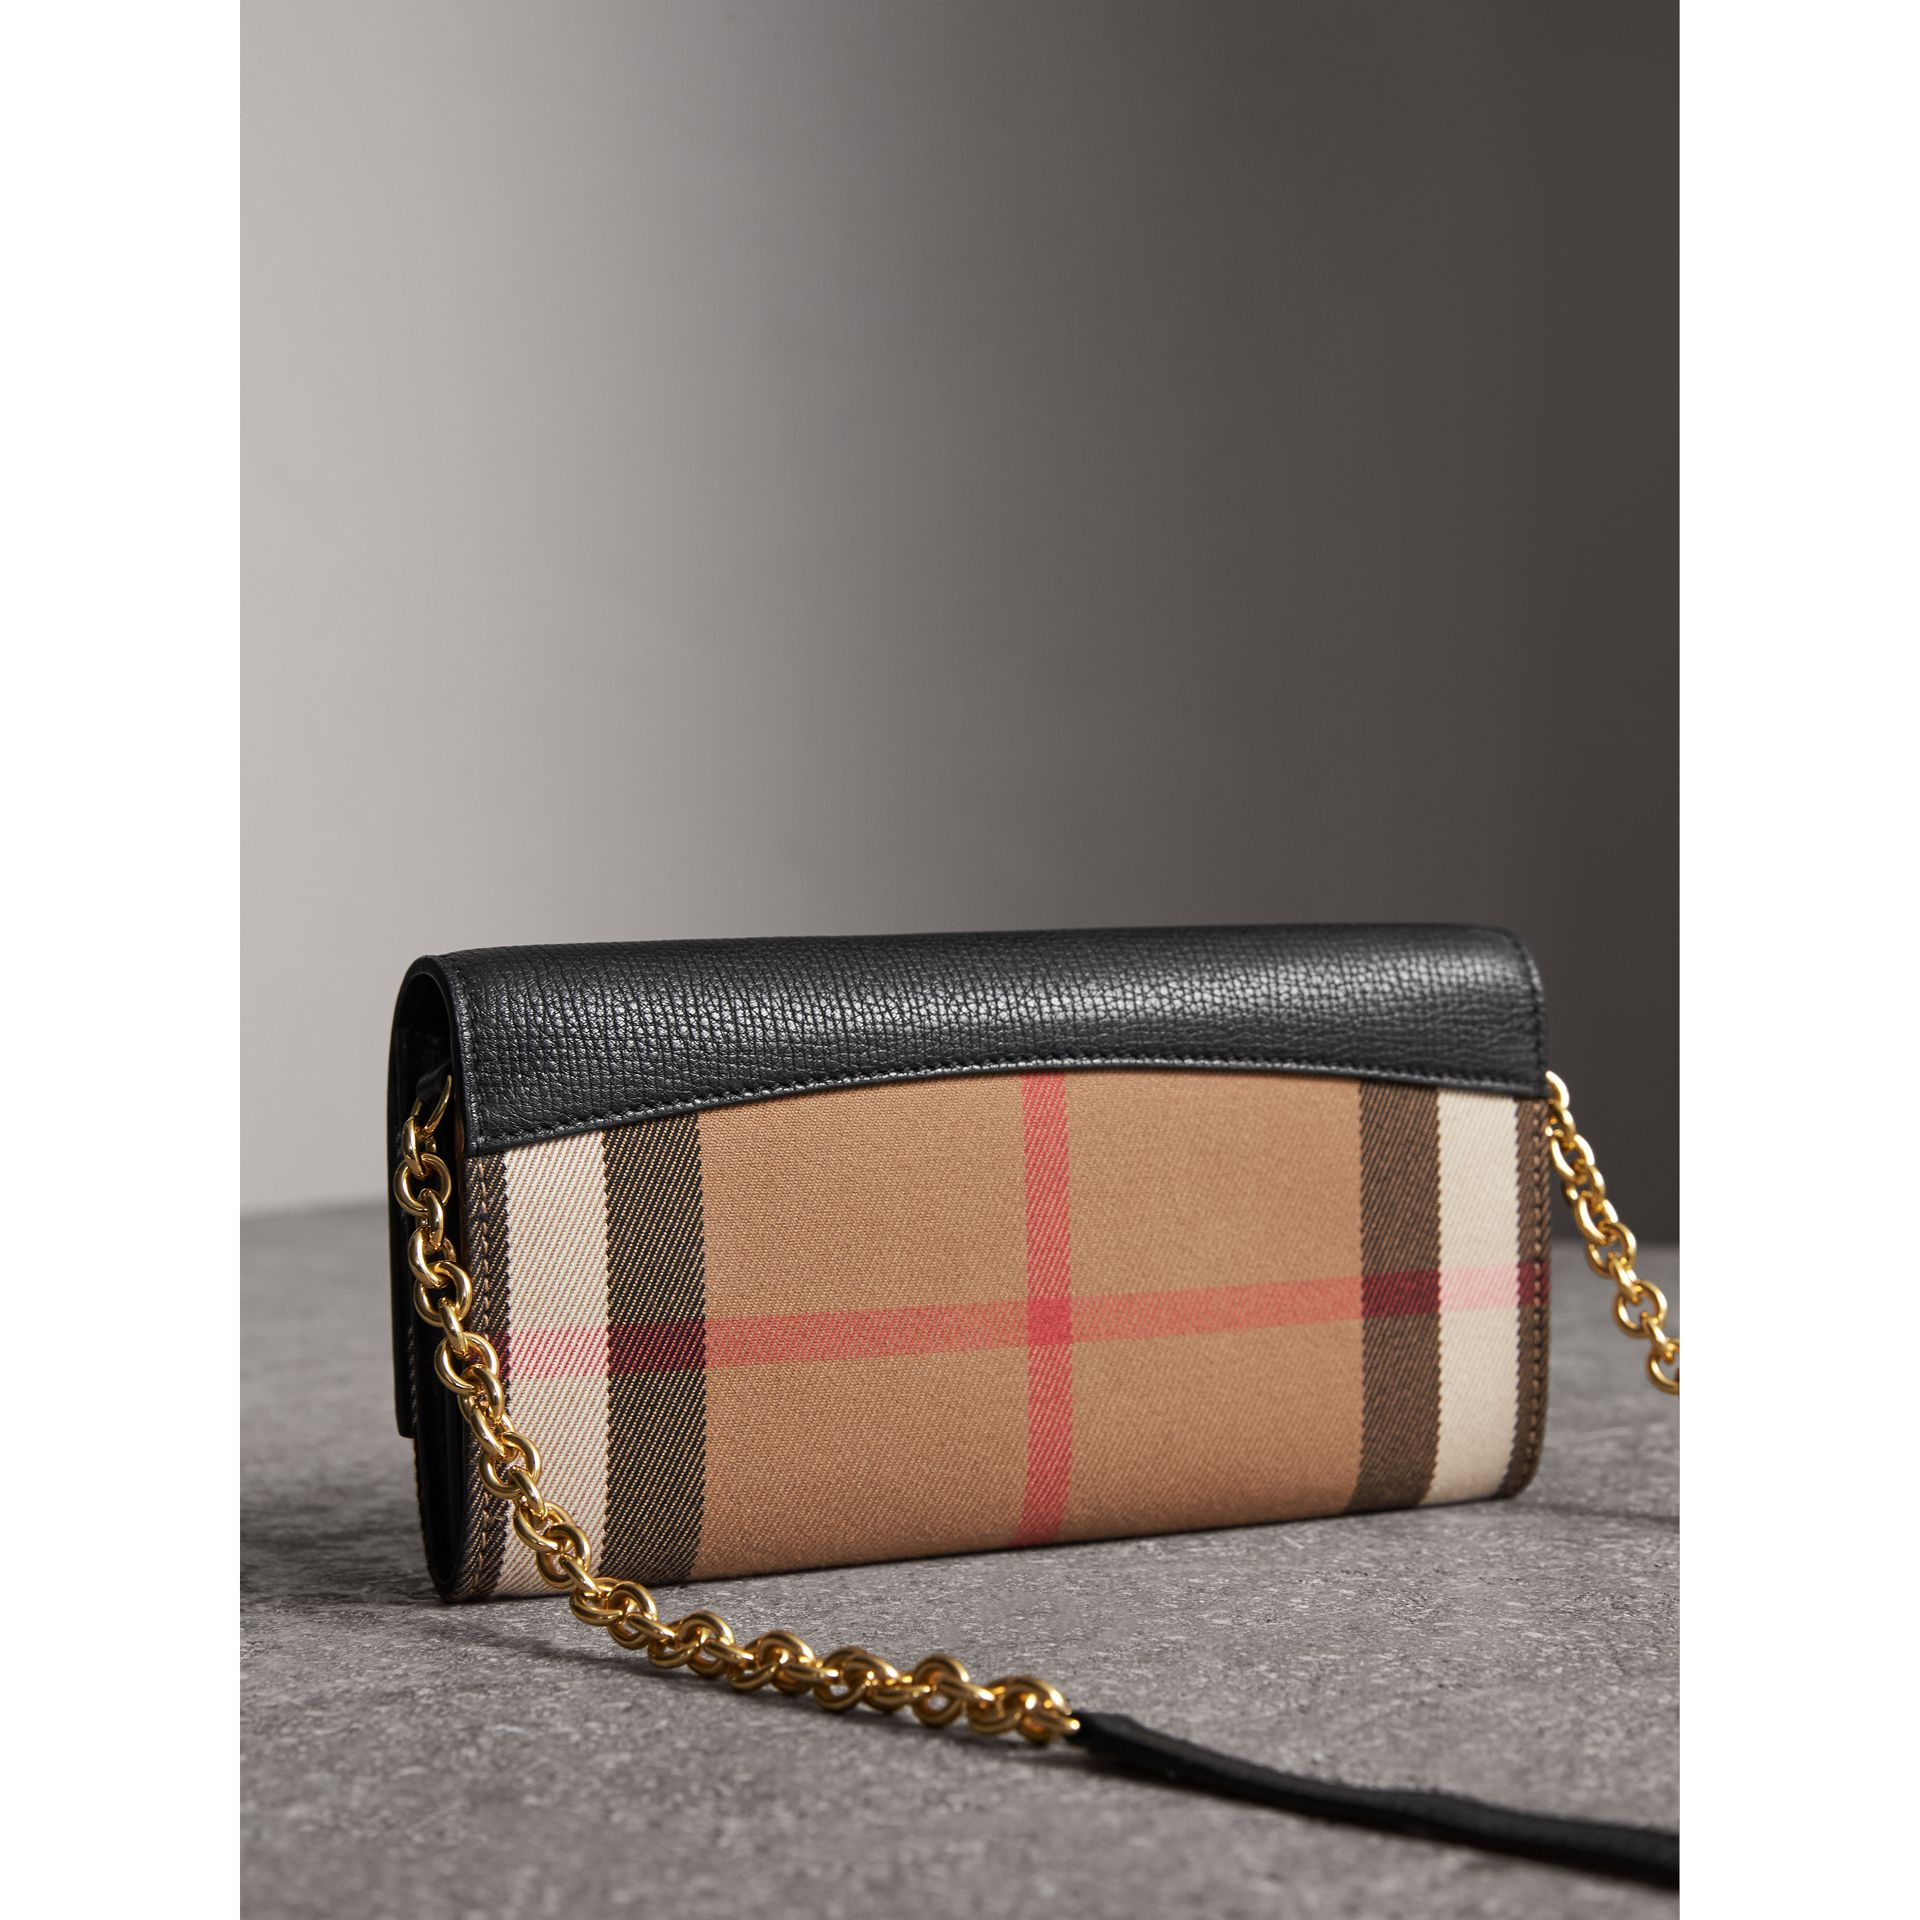 House Check and Leather Wallet with Chain in Black - Women | Burberry - gallery image 4